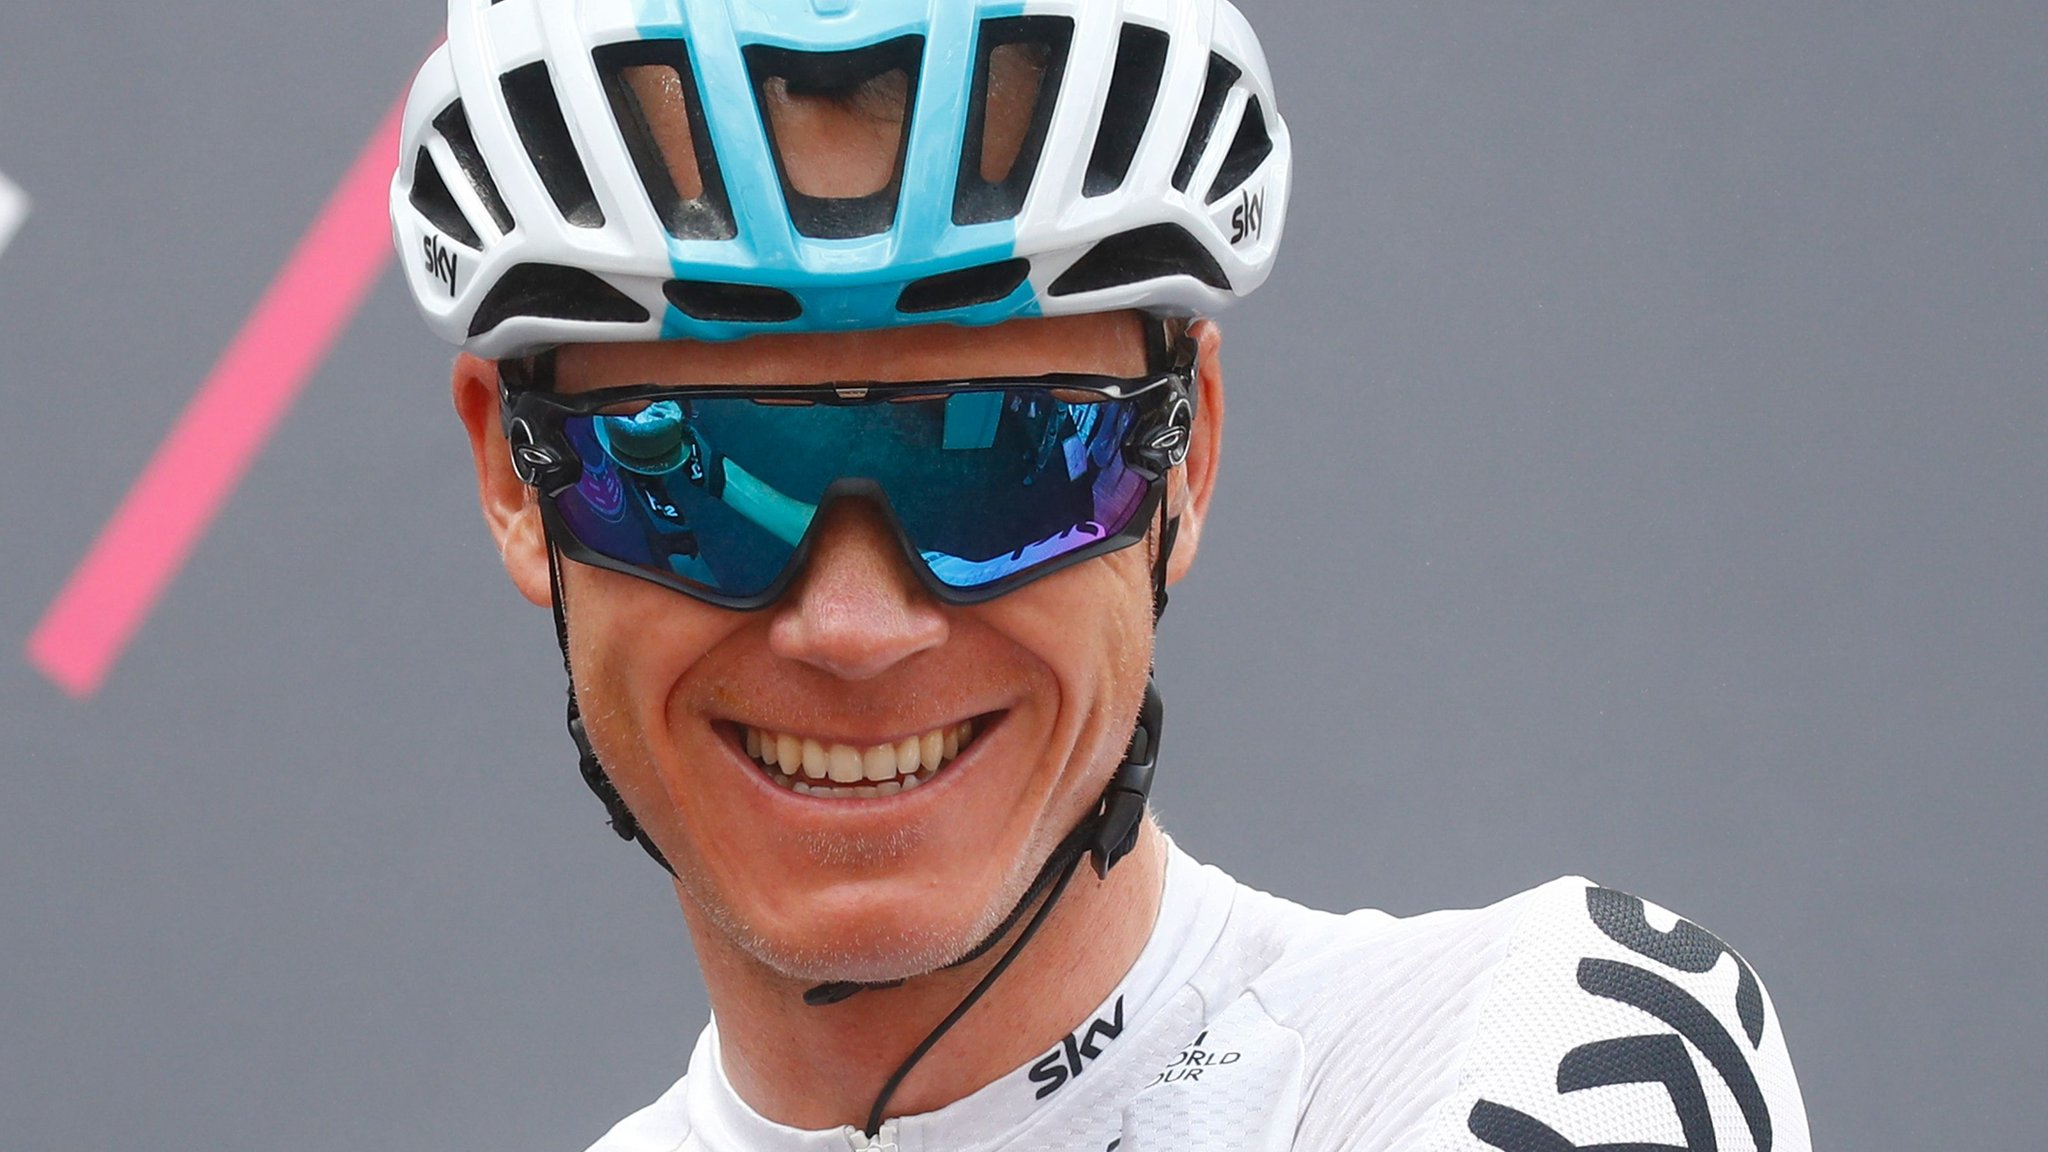 Giro d'Italia: Chris Froome wins stage 19 to take overall lead from Simon Yates